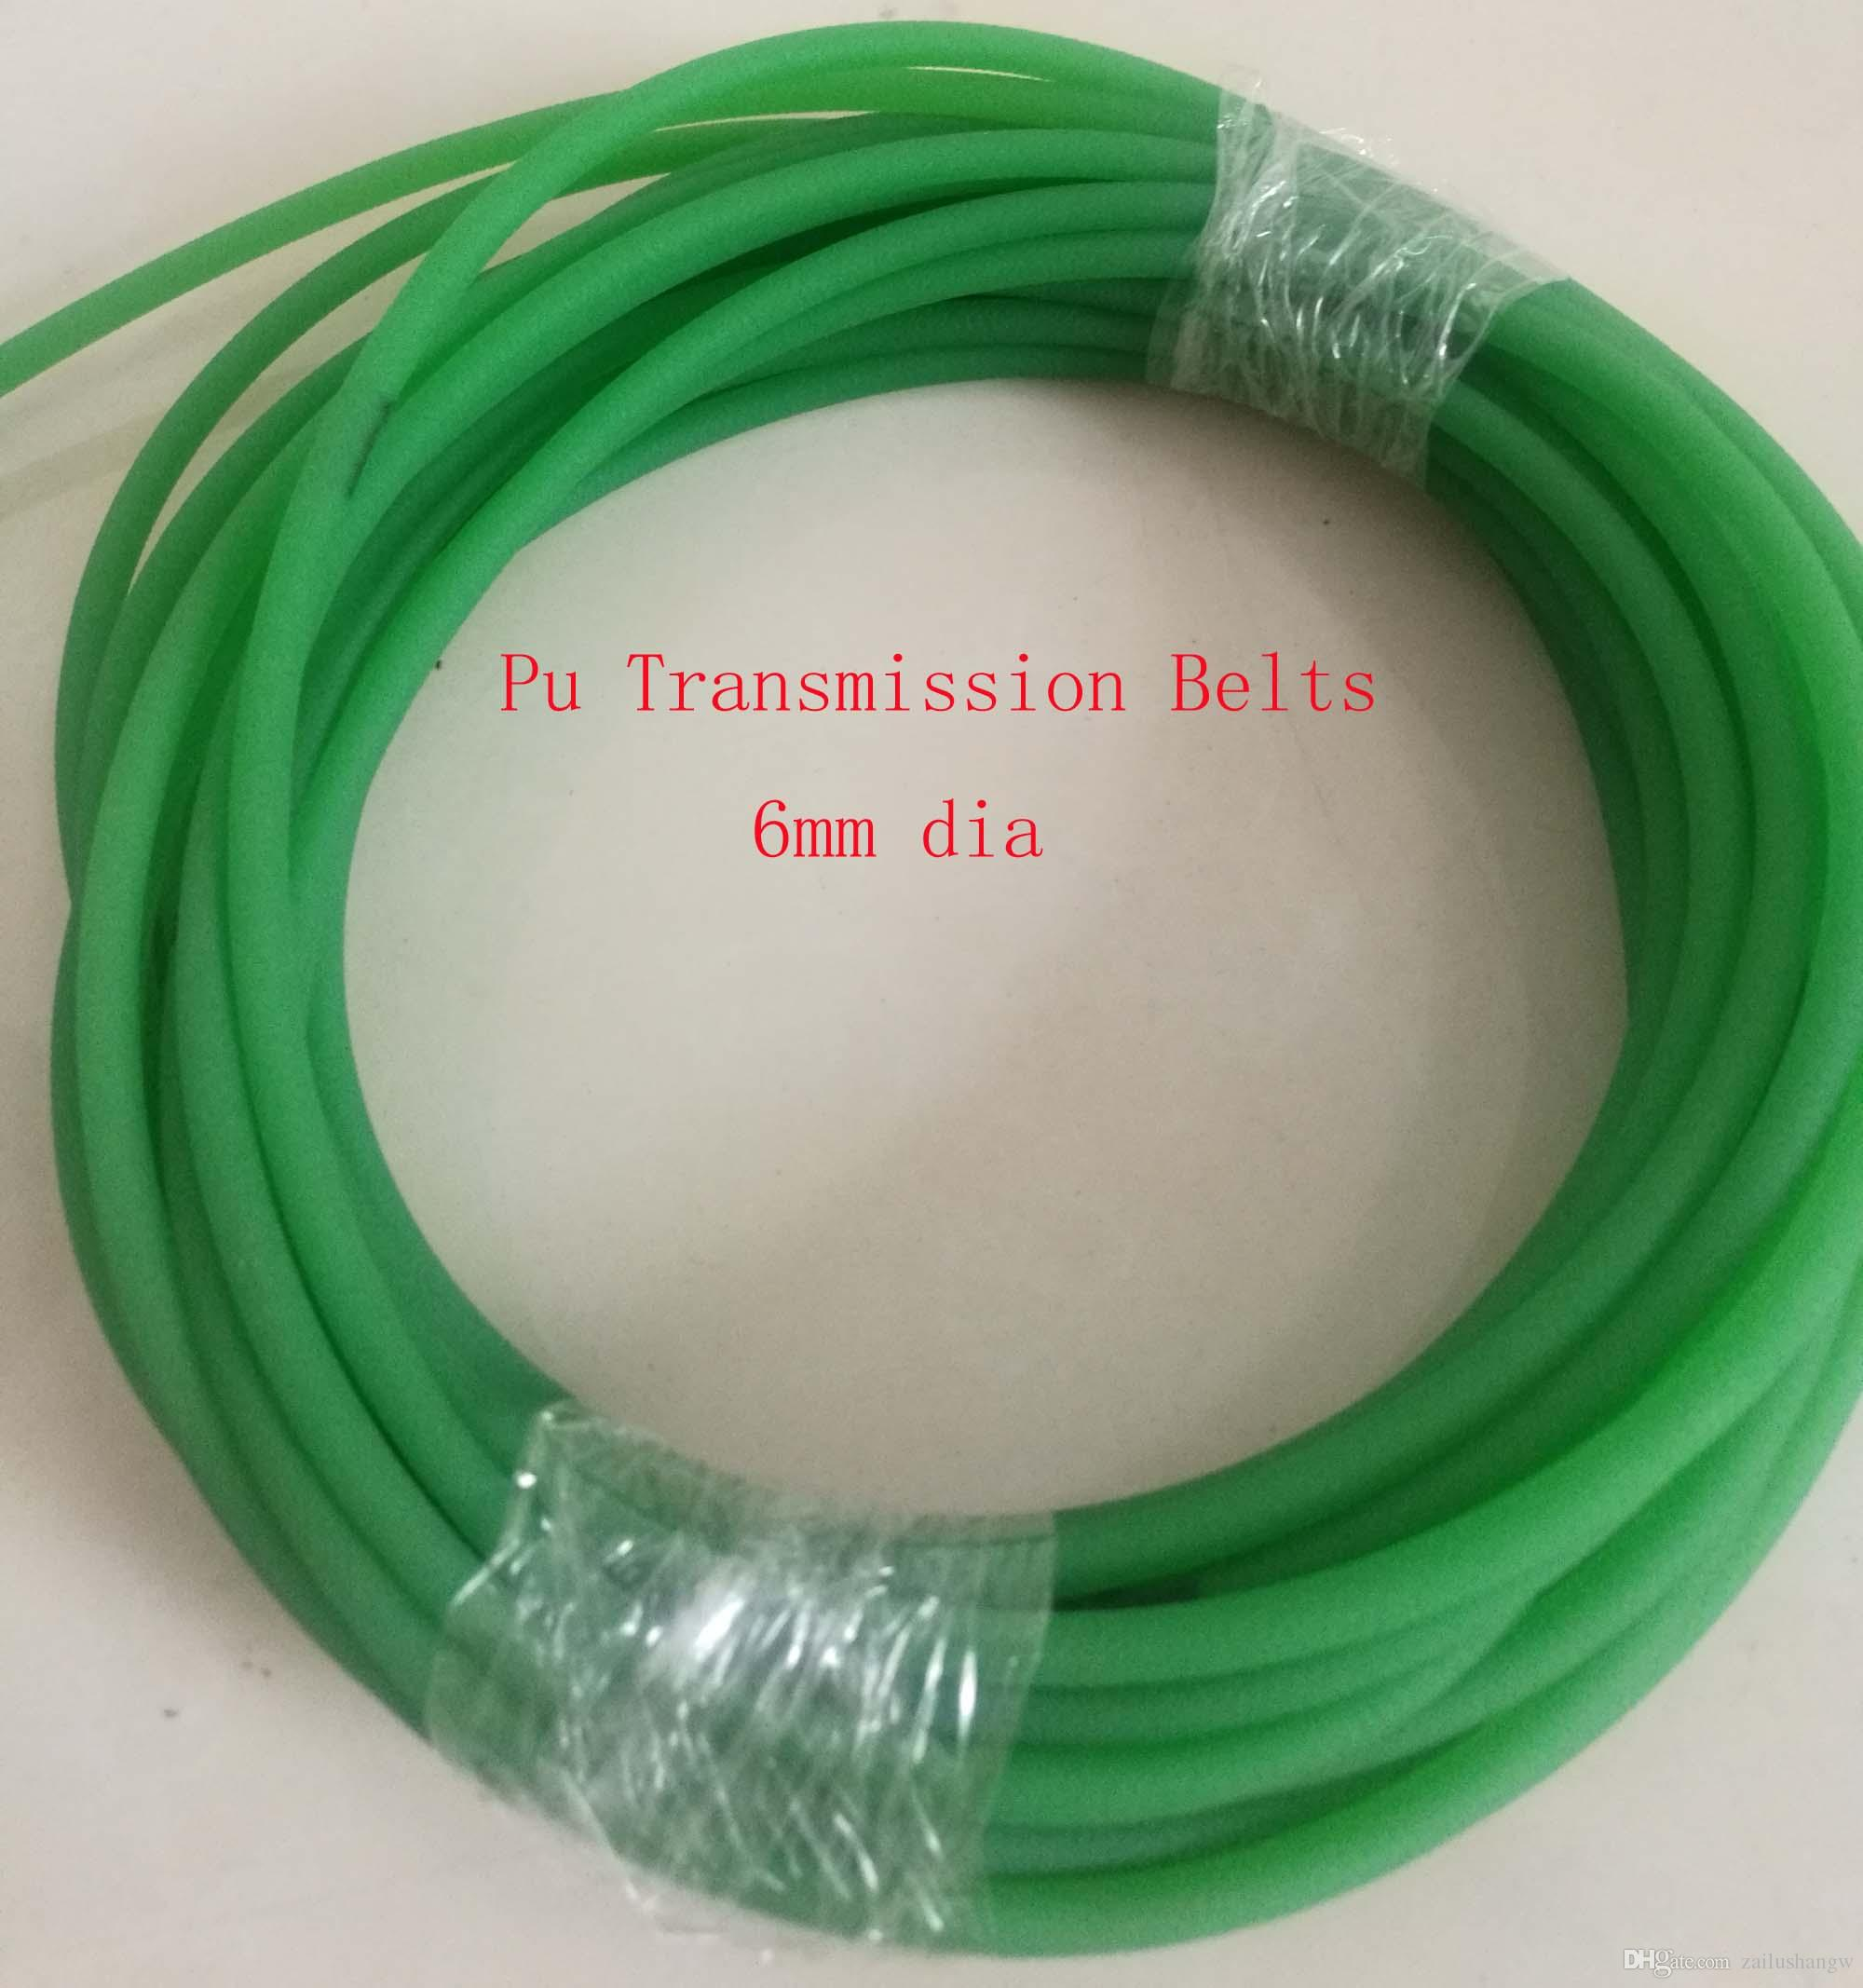 6mm Dia Rough Surface Polyurethane Pu Round Transmission Belts In Refers To The Installation Of Electrical Wiring About 10m Belt Online With 2343 Meter On